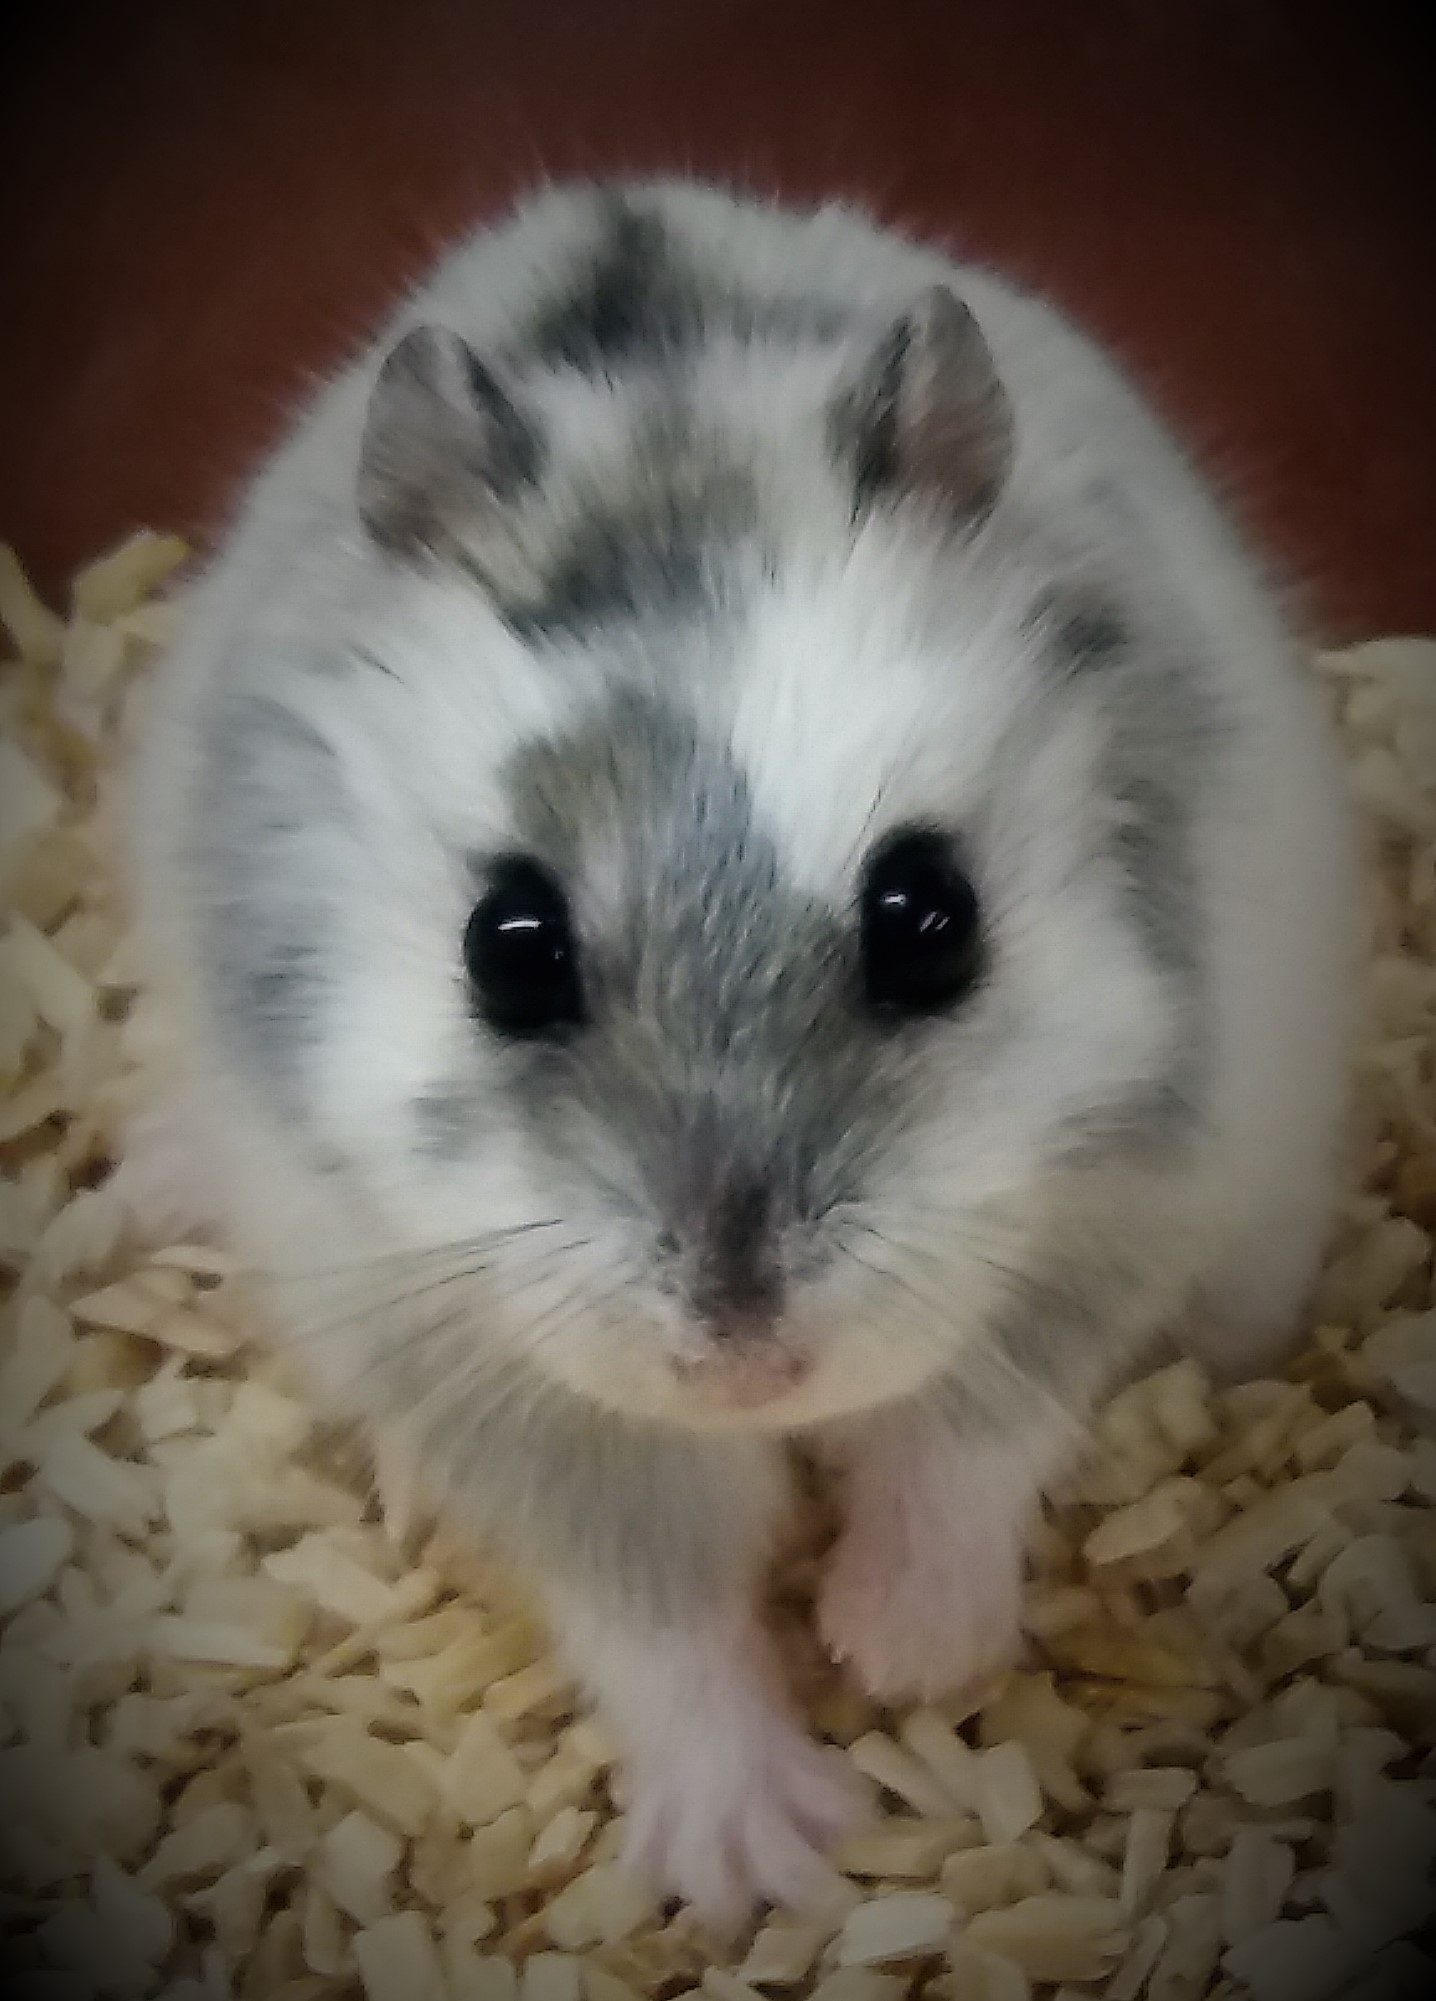 Djungarian hamster during the seasonal moult from the white, well-insulating winter fur to the gray-brown summer fur. In contrast to the moult from summer to winter transition, this fur change from winter to summer is very unstructured and  leaves the  hamsters look like motley cows